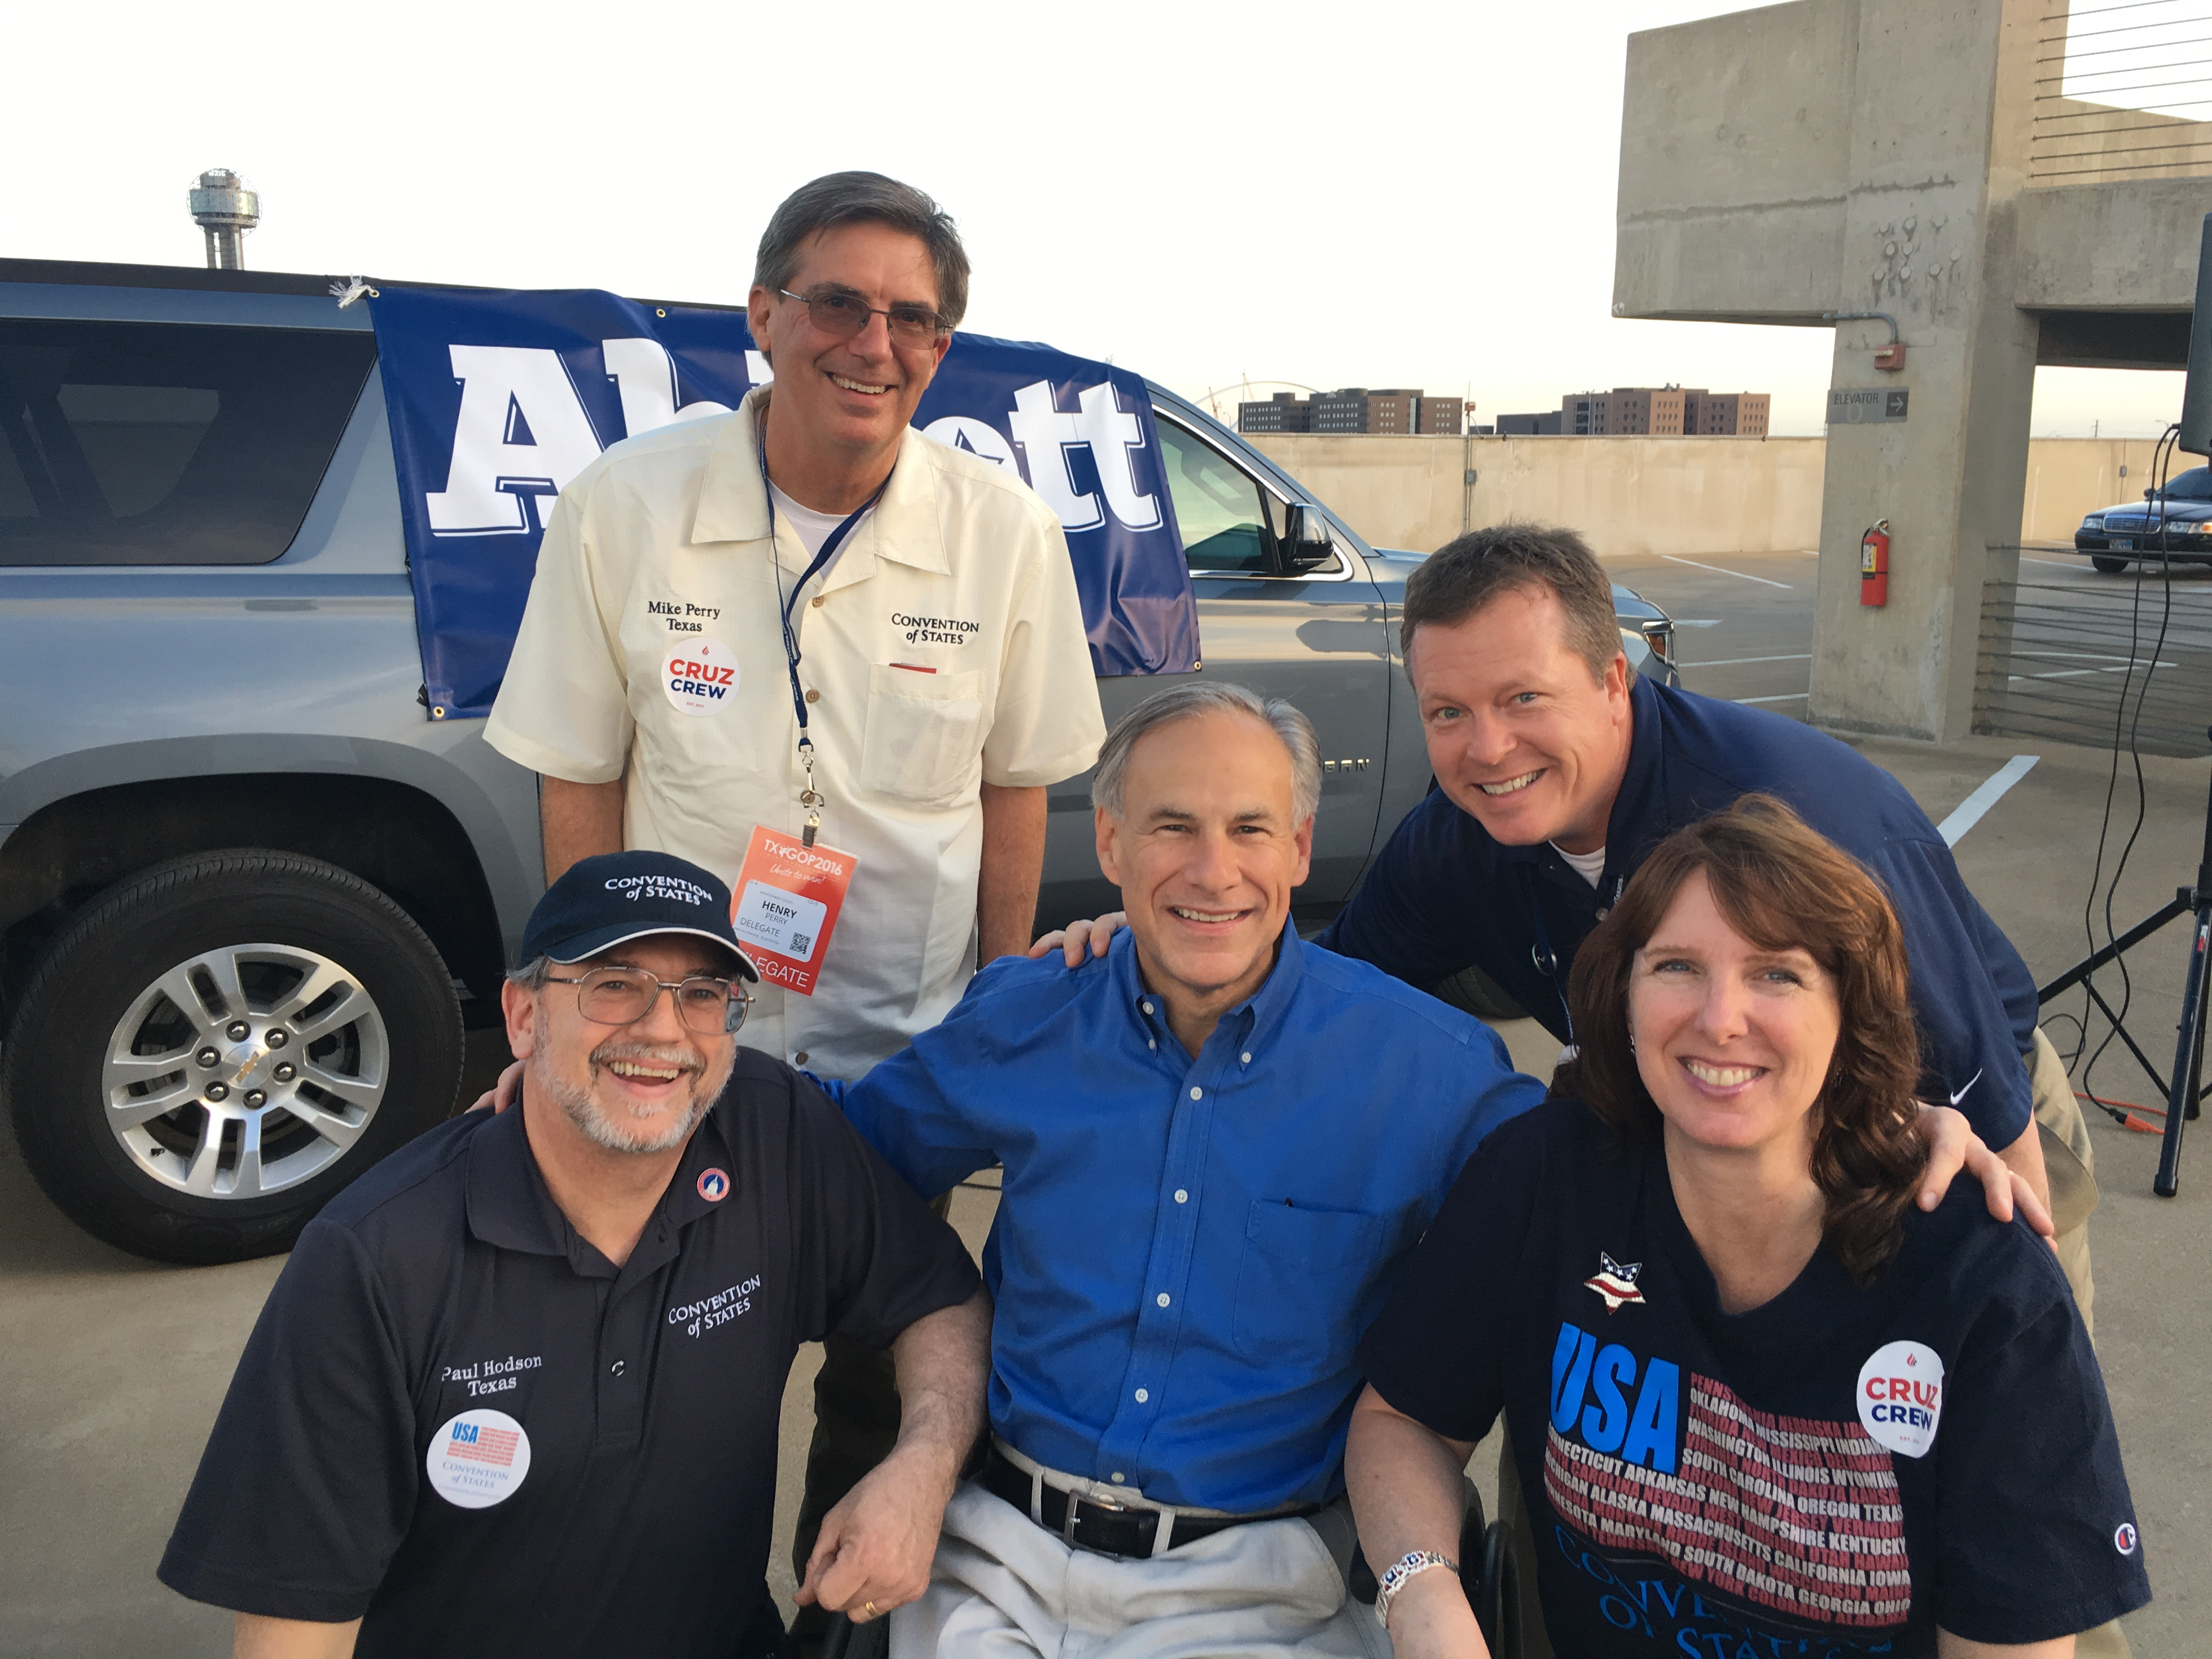 Governor_Abbott_with_COS_Volunteers_Mike_Perry__Bill_Ely__Paul_Hodson__Michelle_Hodson.JPG